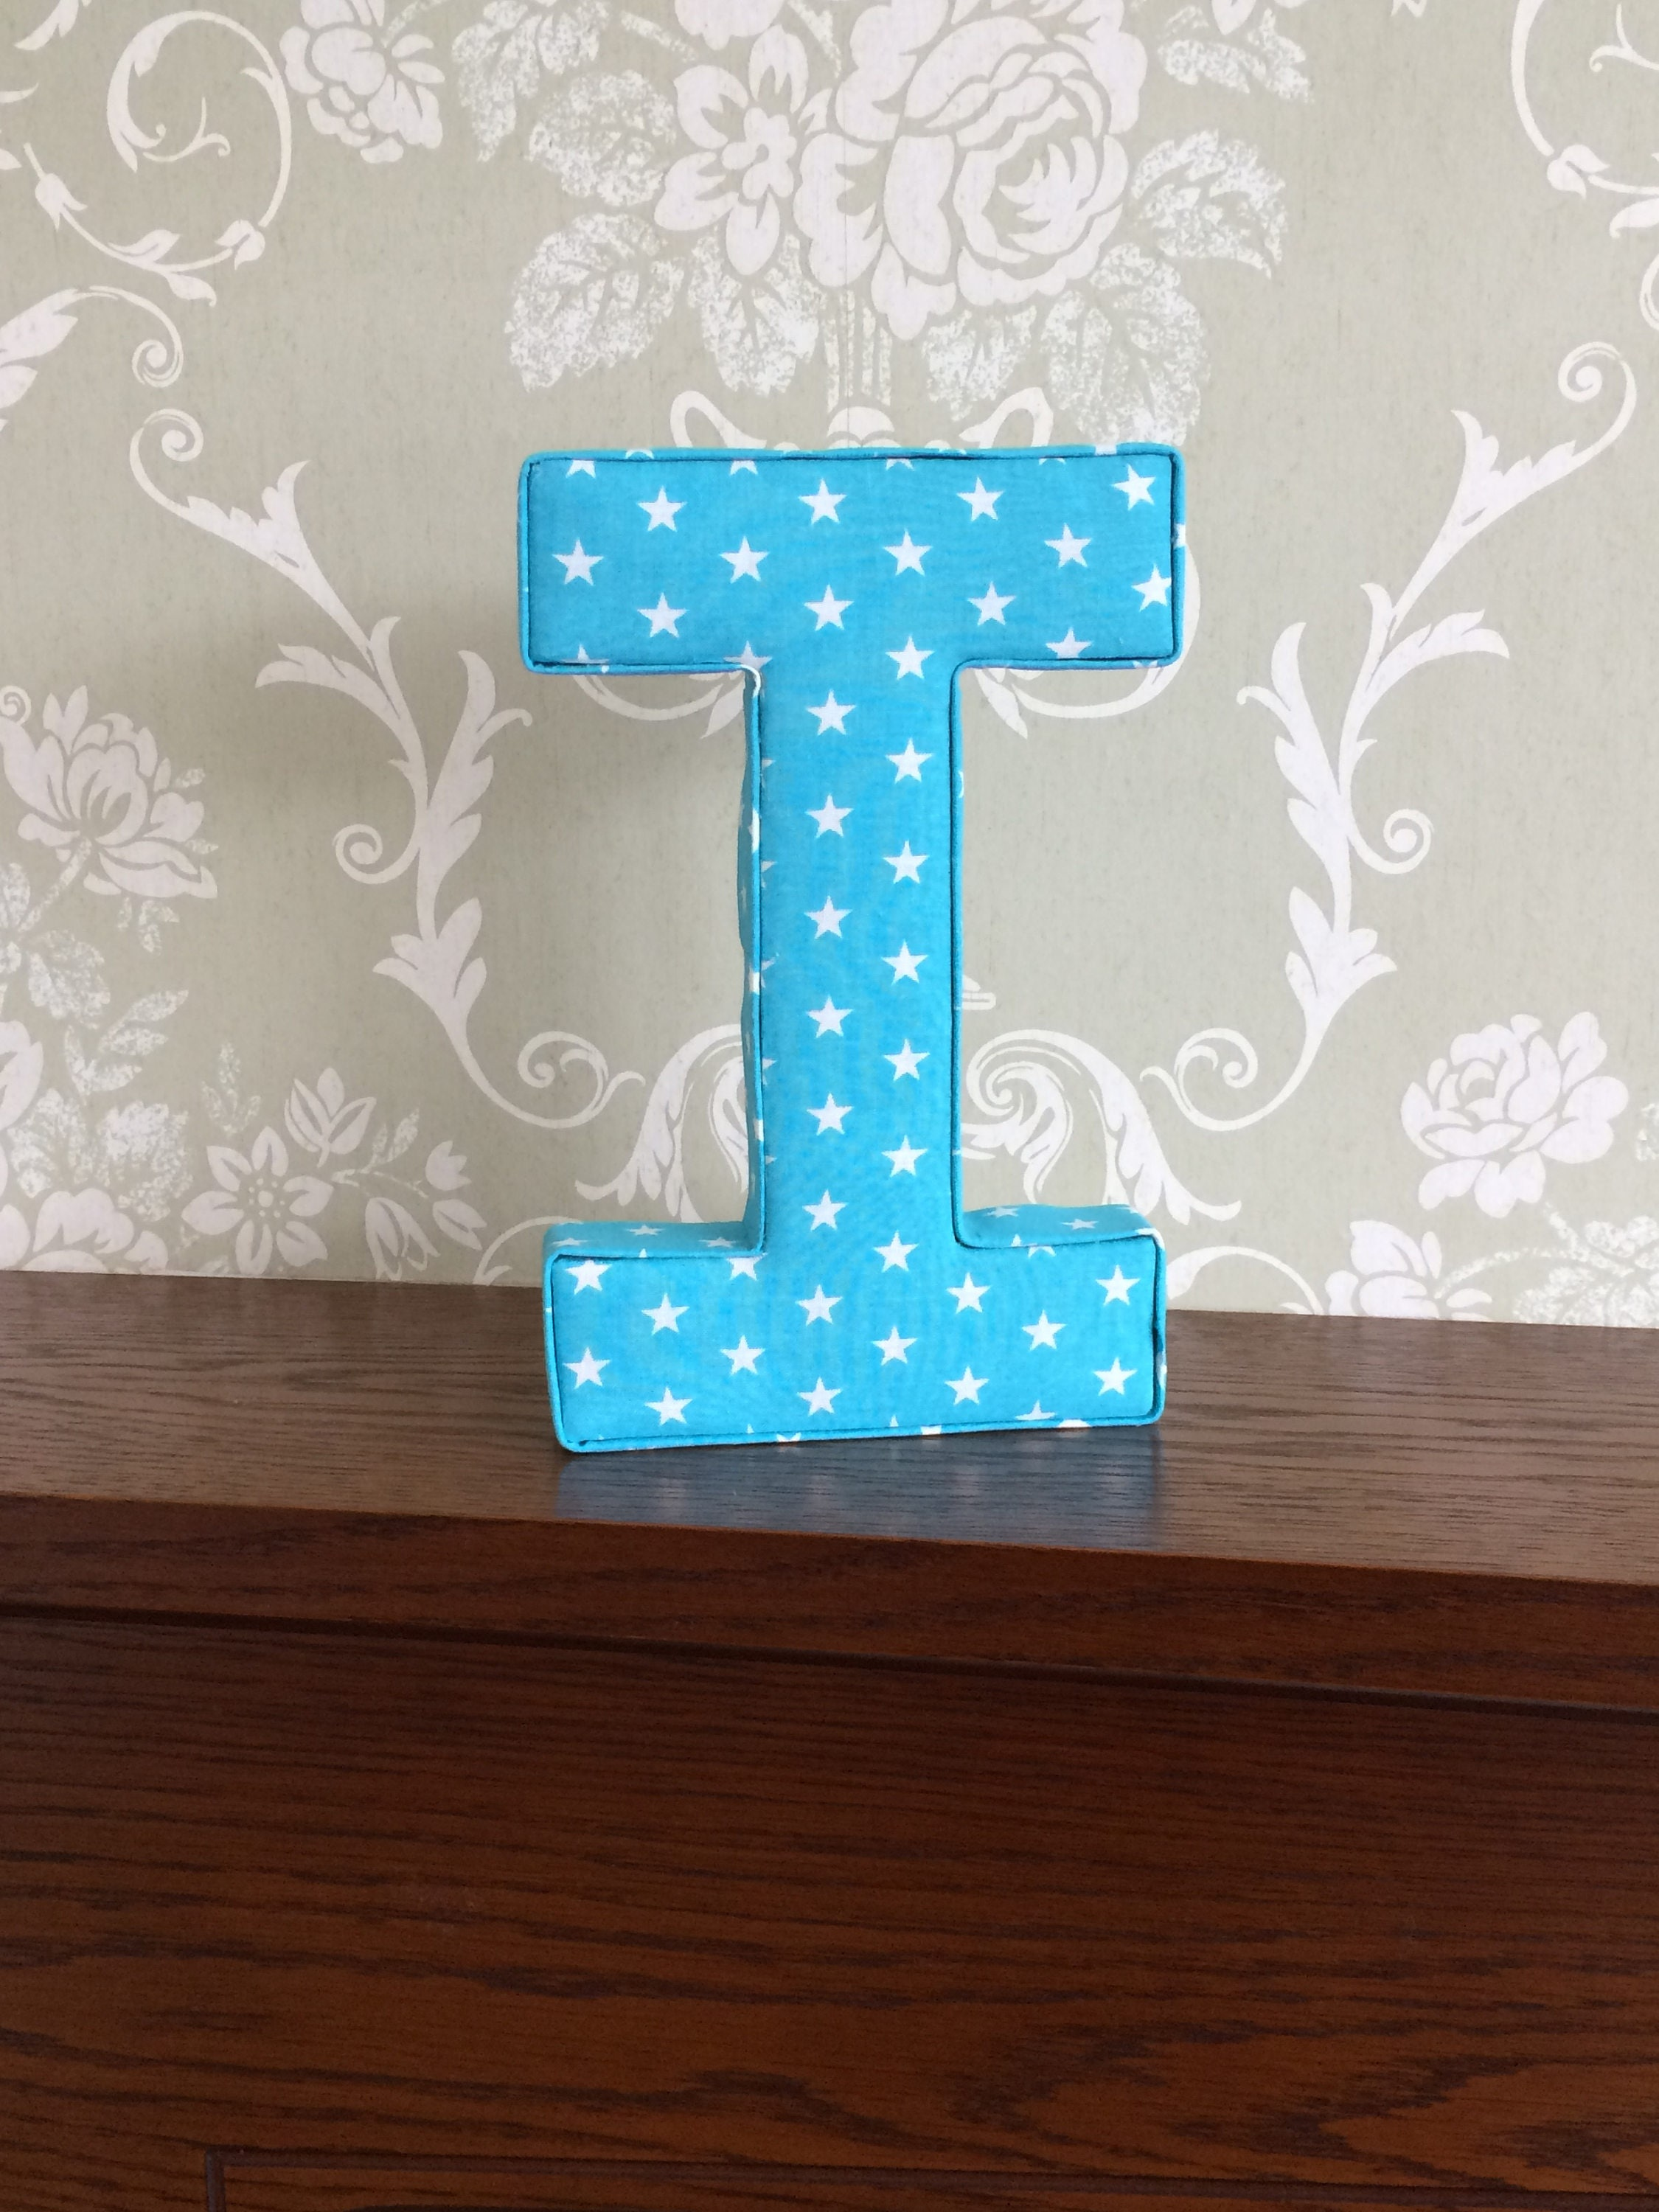 Turquoise unisex nursery wall art fabric letters for Fabric covered letters for nursery